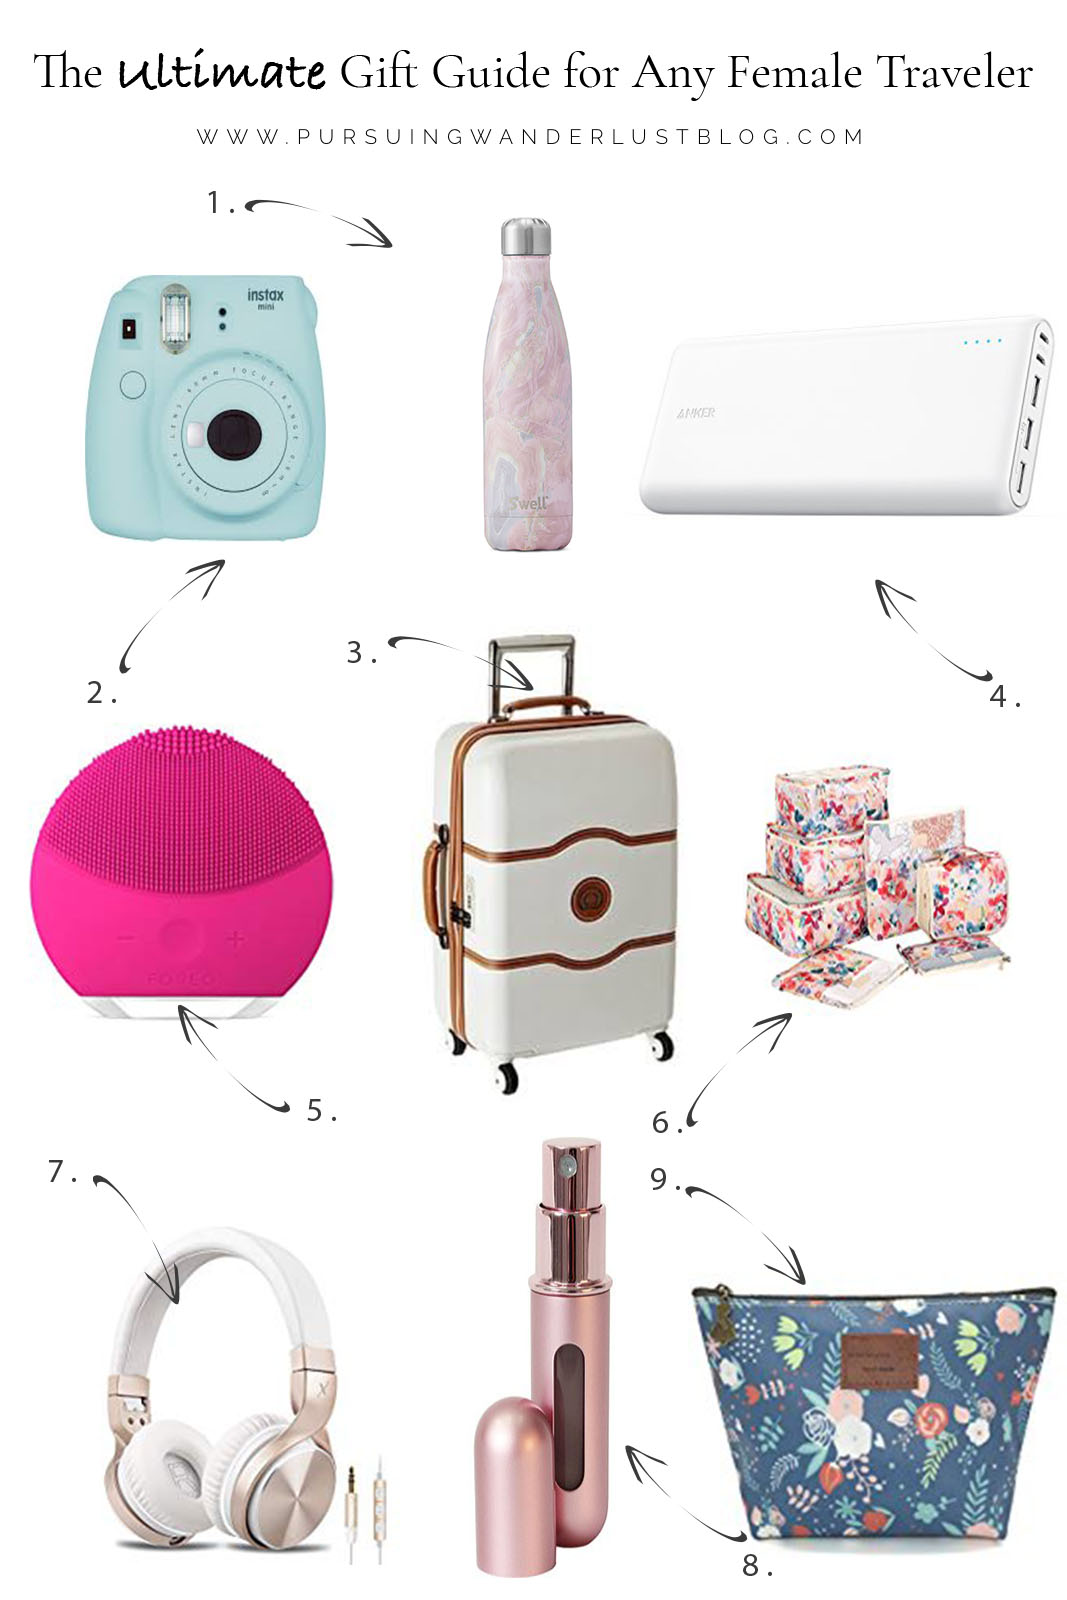 The Ultimate Gift Guide for Female Travelers